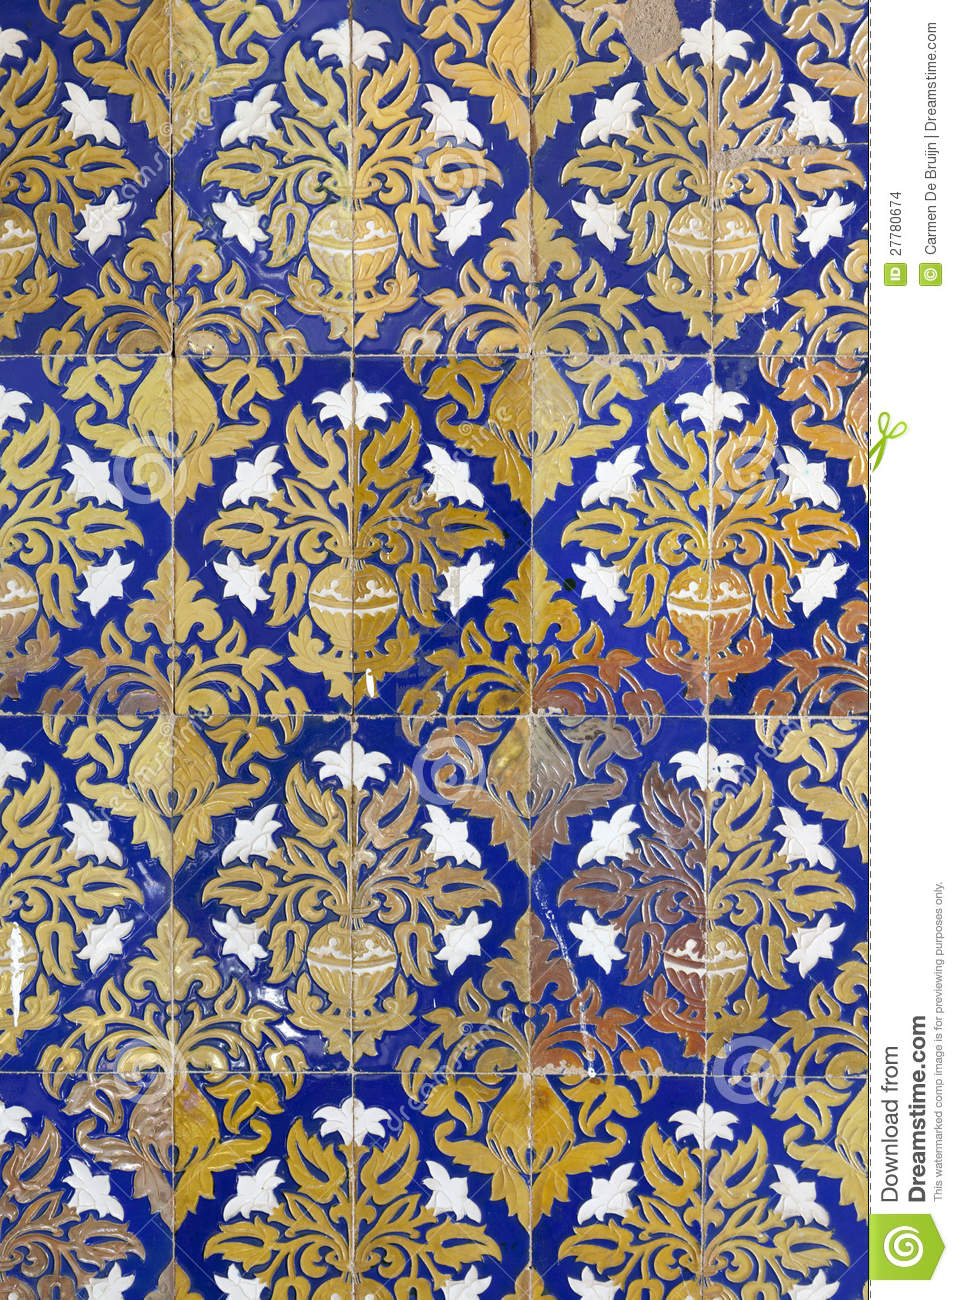 Ceramic Wall Tiles In Seville Spain Stock Photo Image